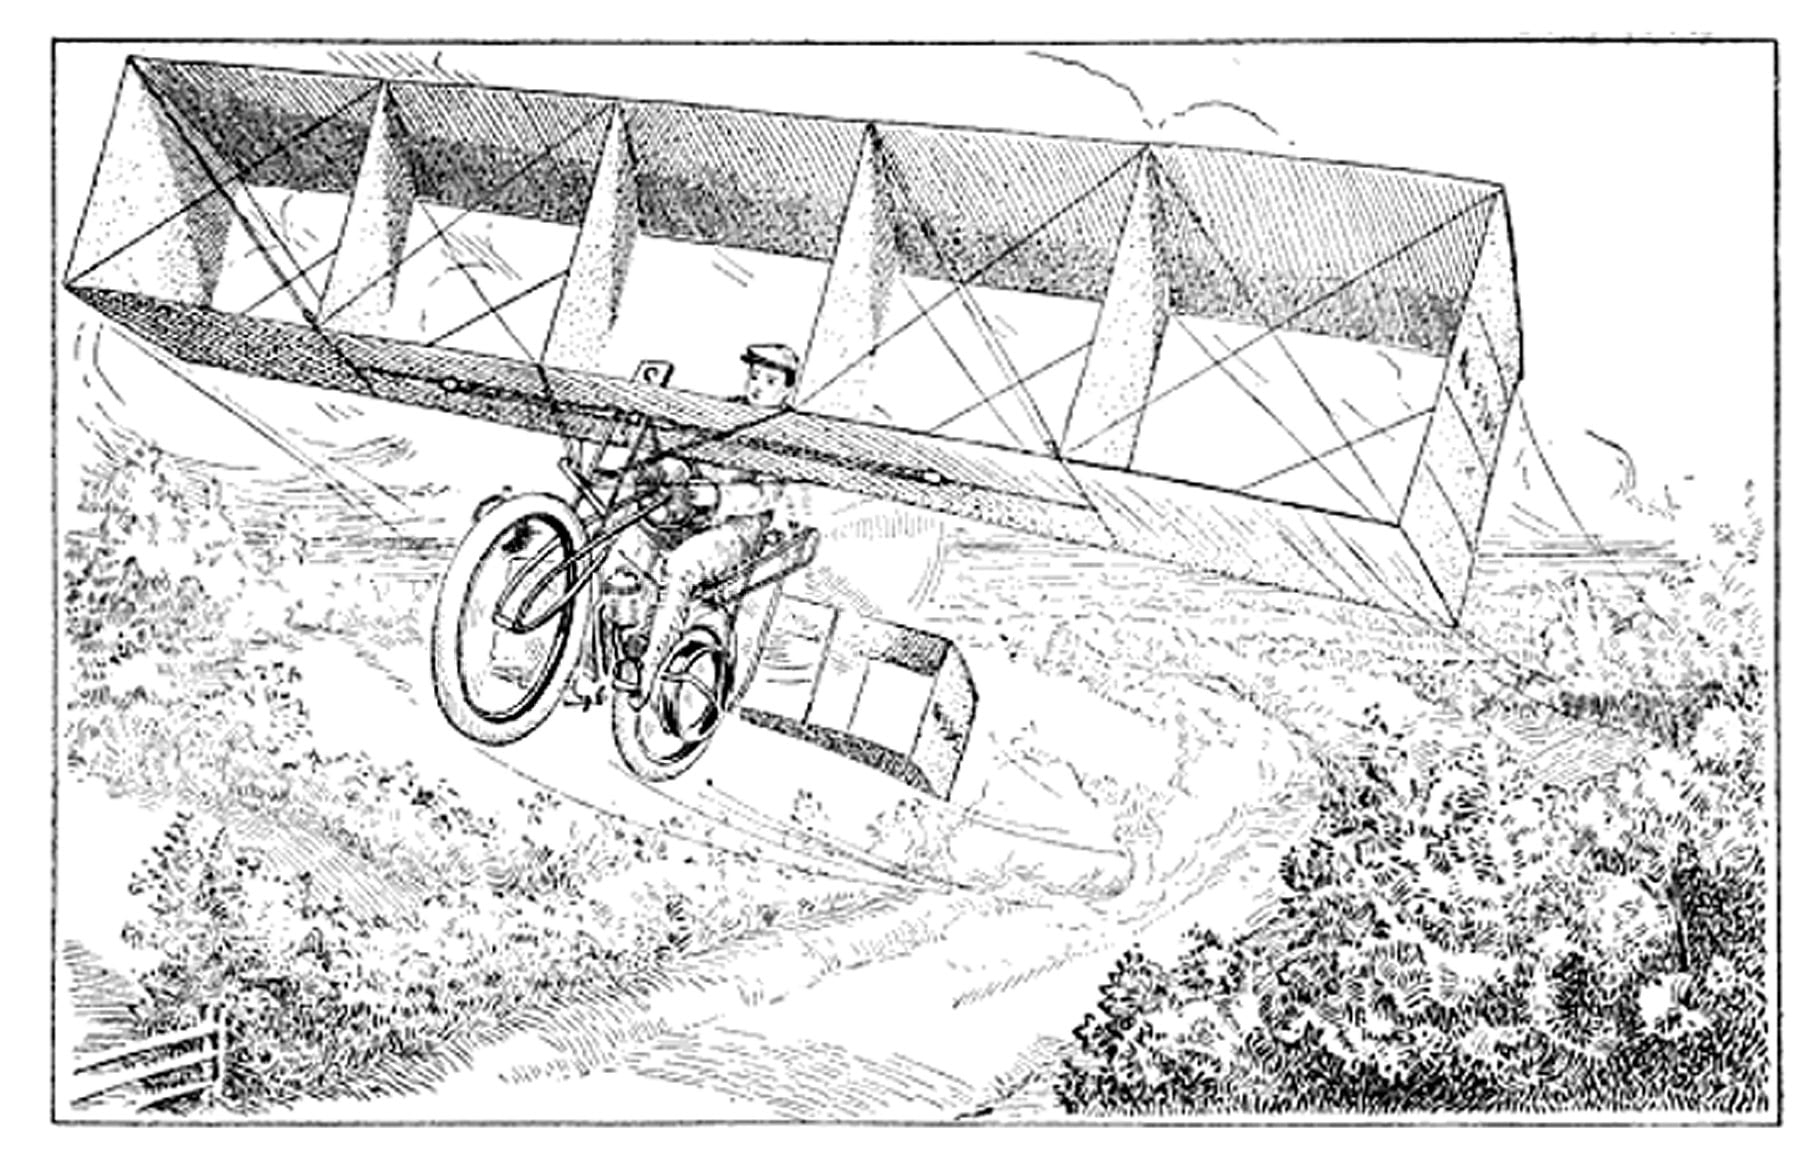 The flying bicycle